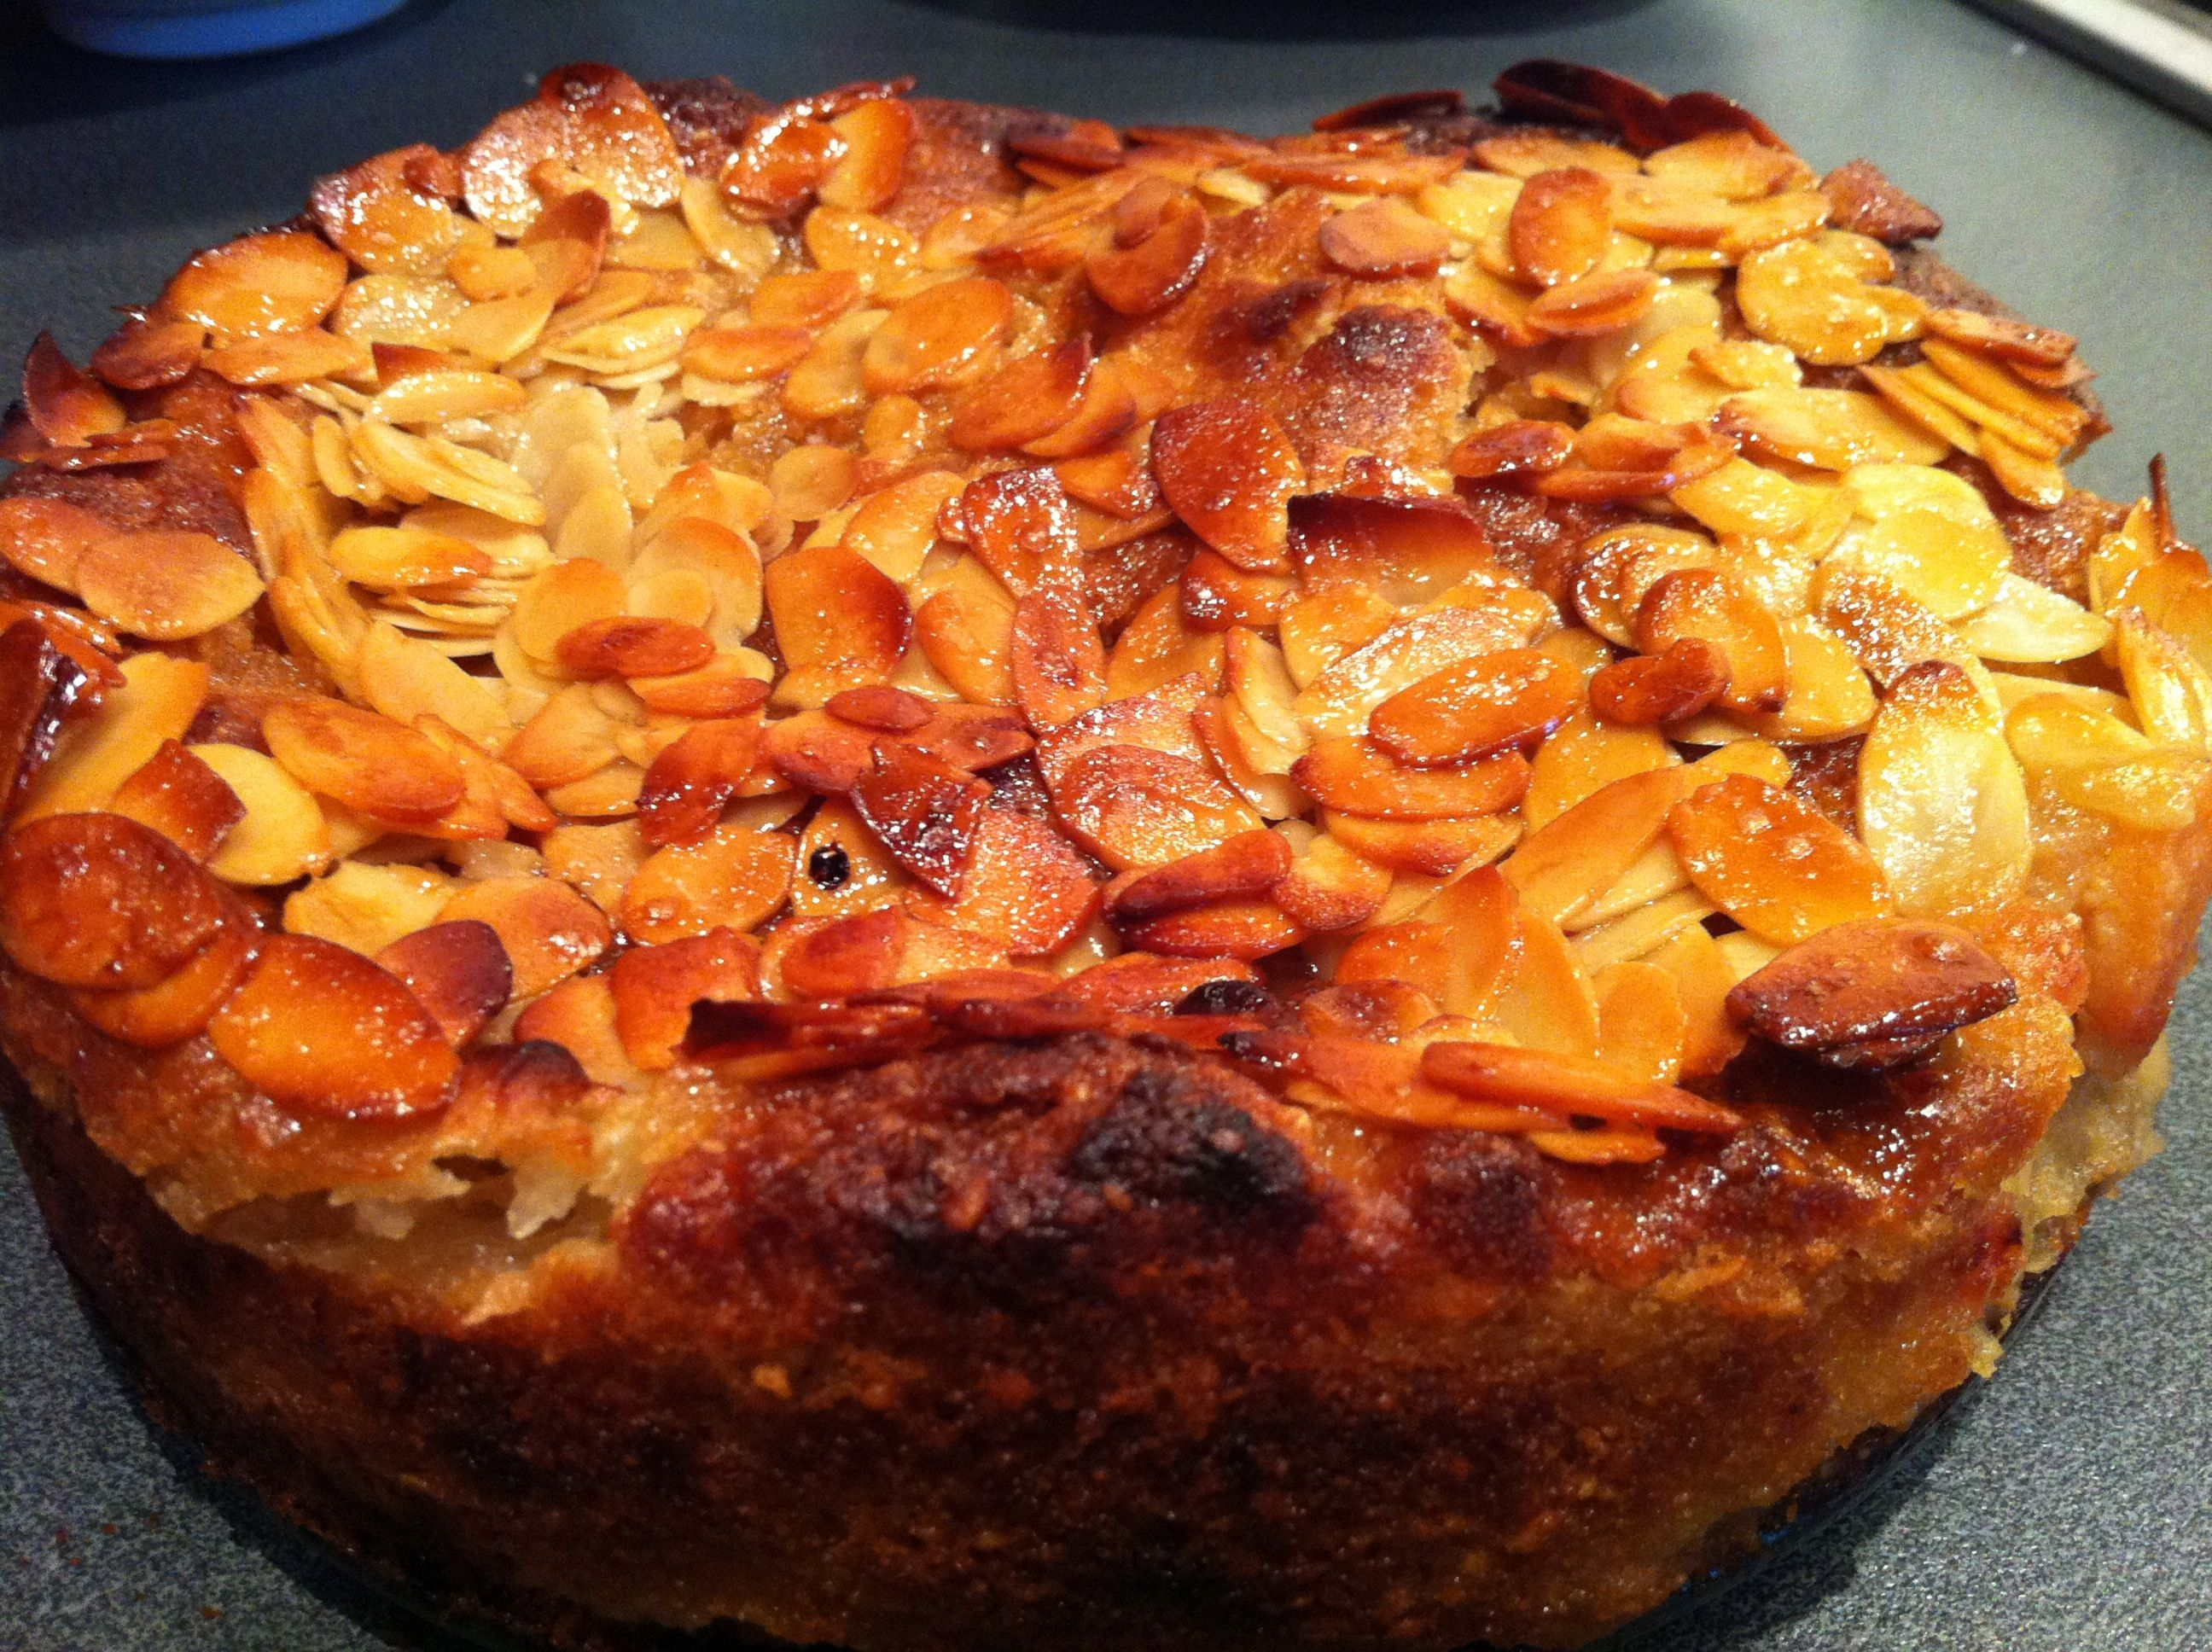 Cake Recipes Using Quinces: Windfall Cake - Apples, Quince & Almond